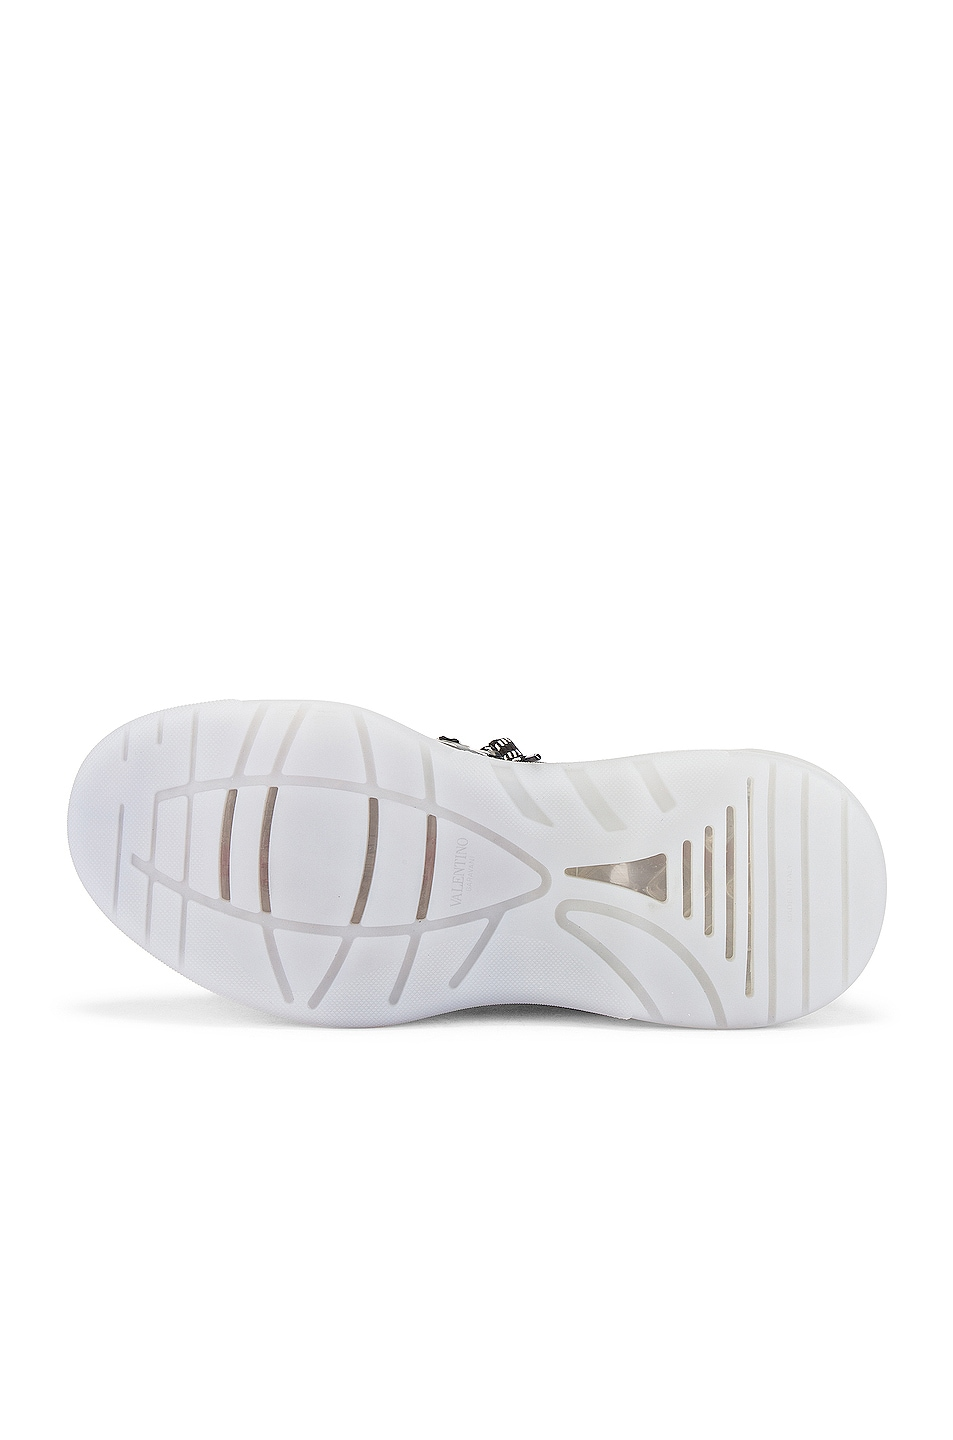 Image 6 of Valentino Low Top Sneaker in White & Black & Transparent